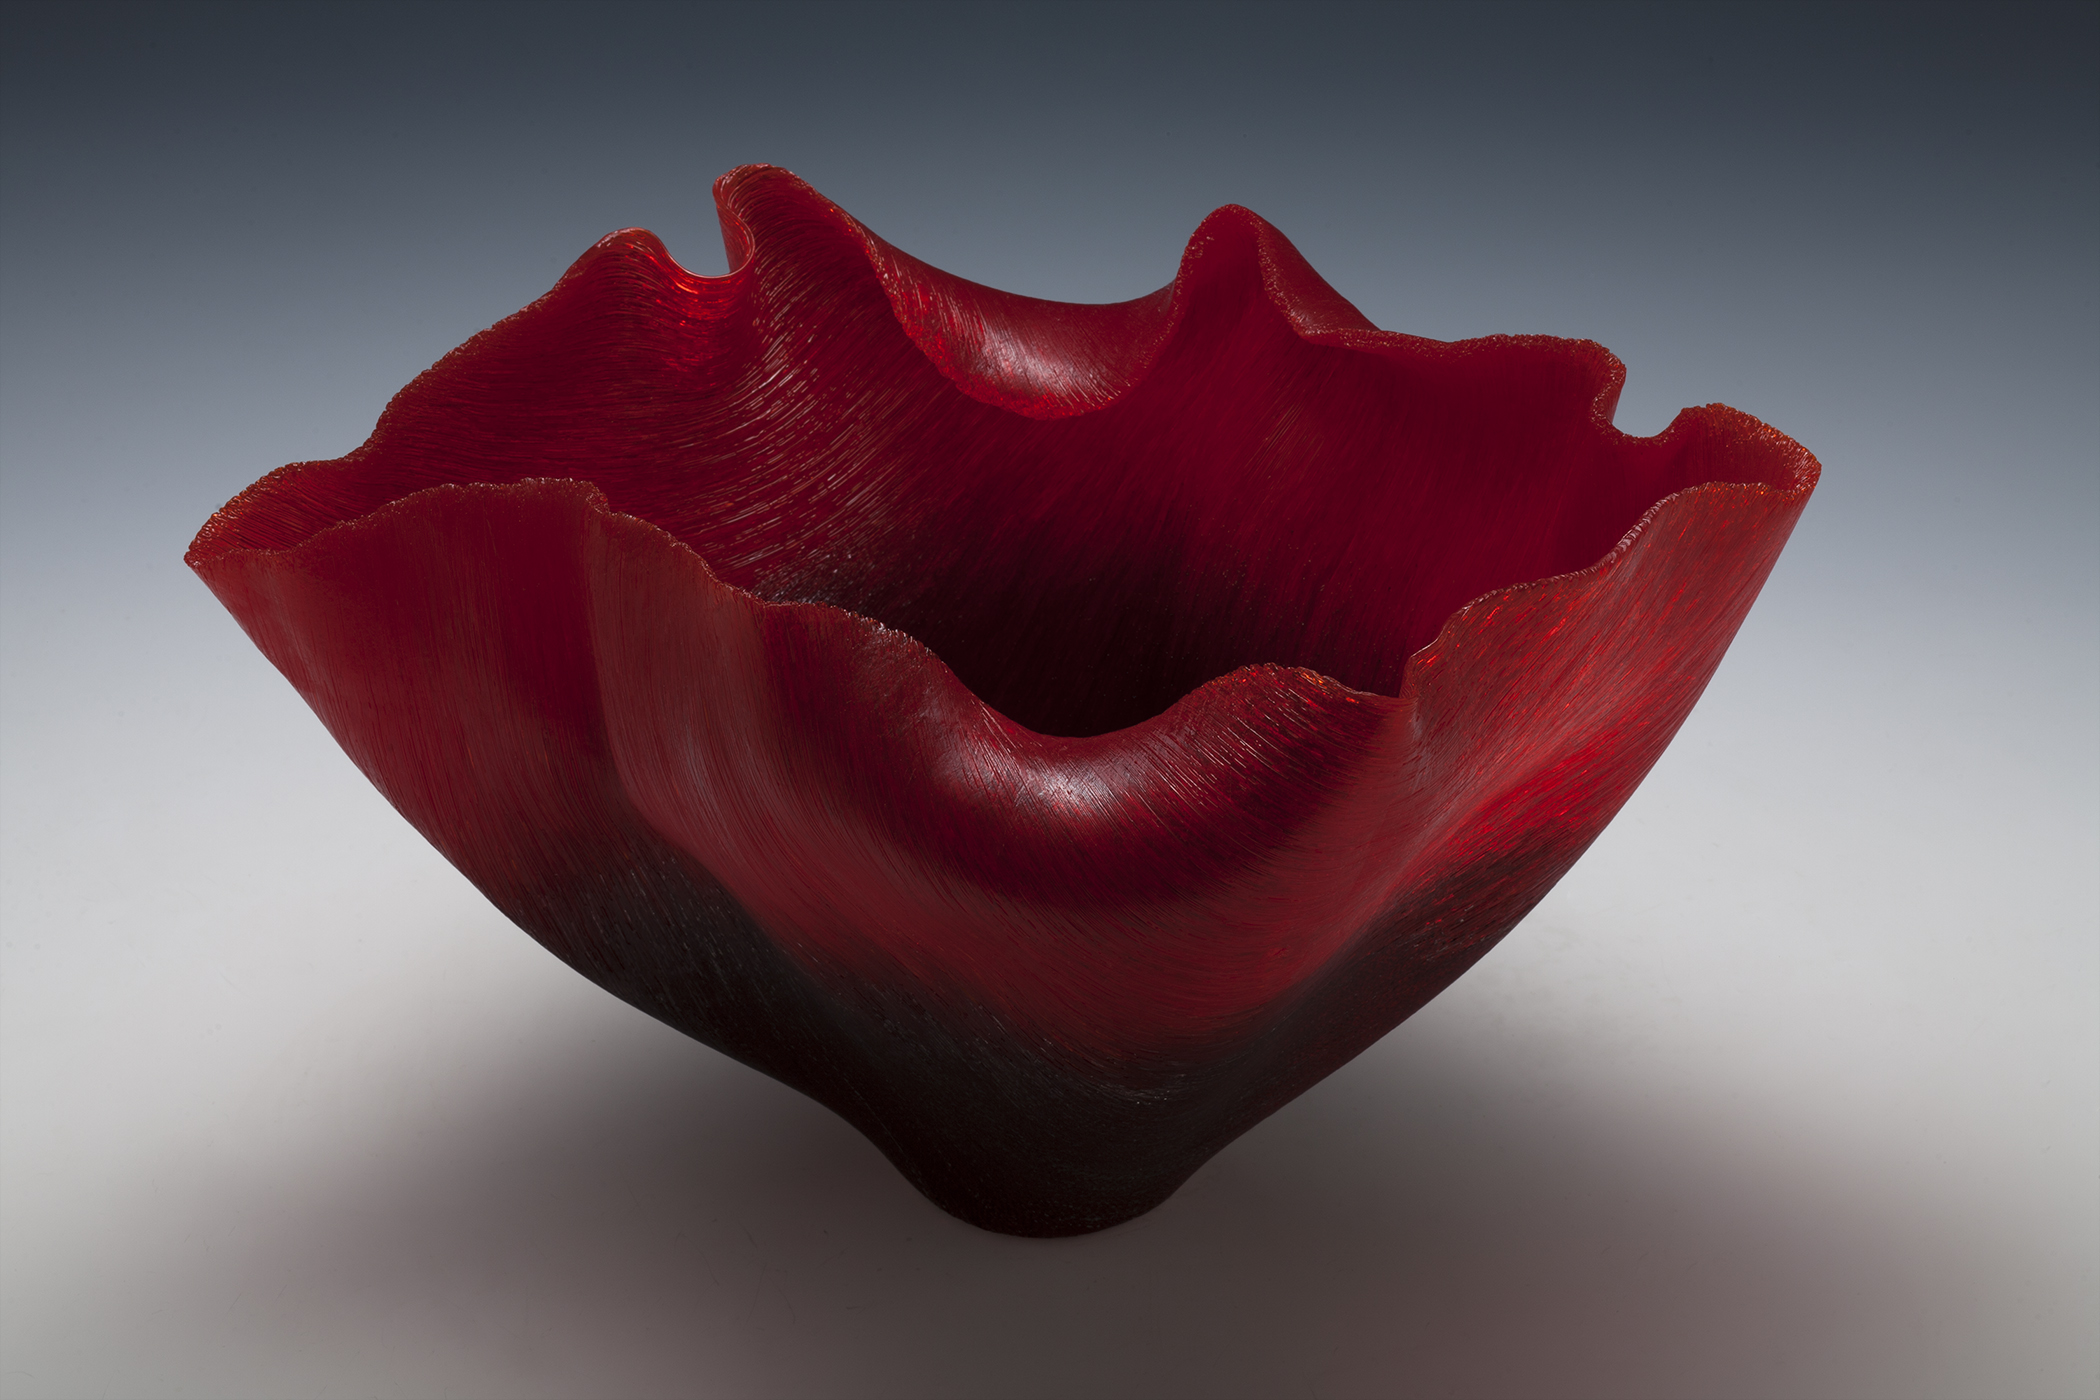 Fused and slumped red glass monofilaments sculpture by Toots Zynsky